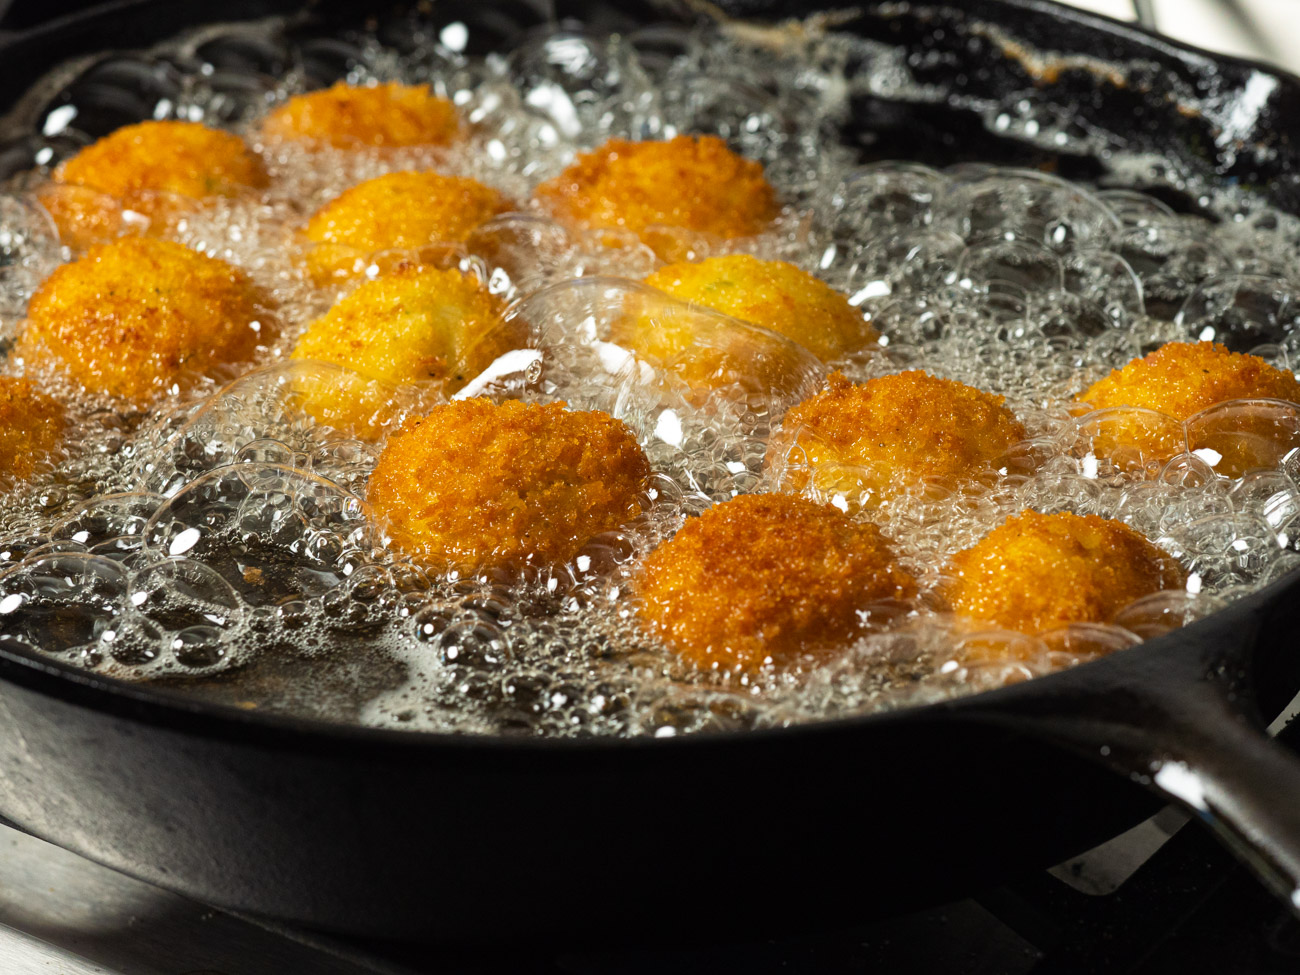 Fry until golden brown, about 3-4 minutes per small batch. Set aside to drain on paper towels before serving.